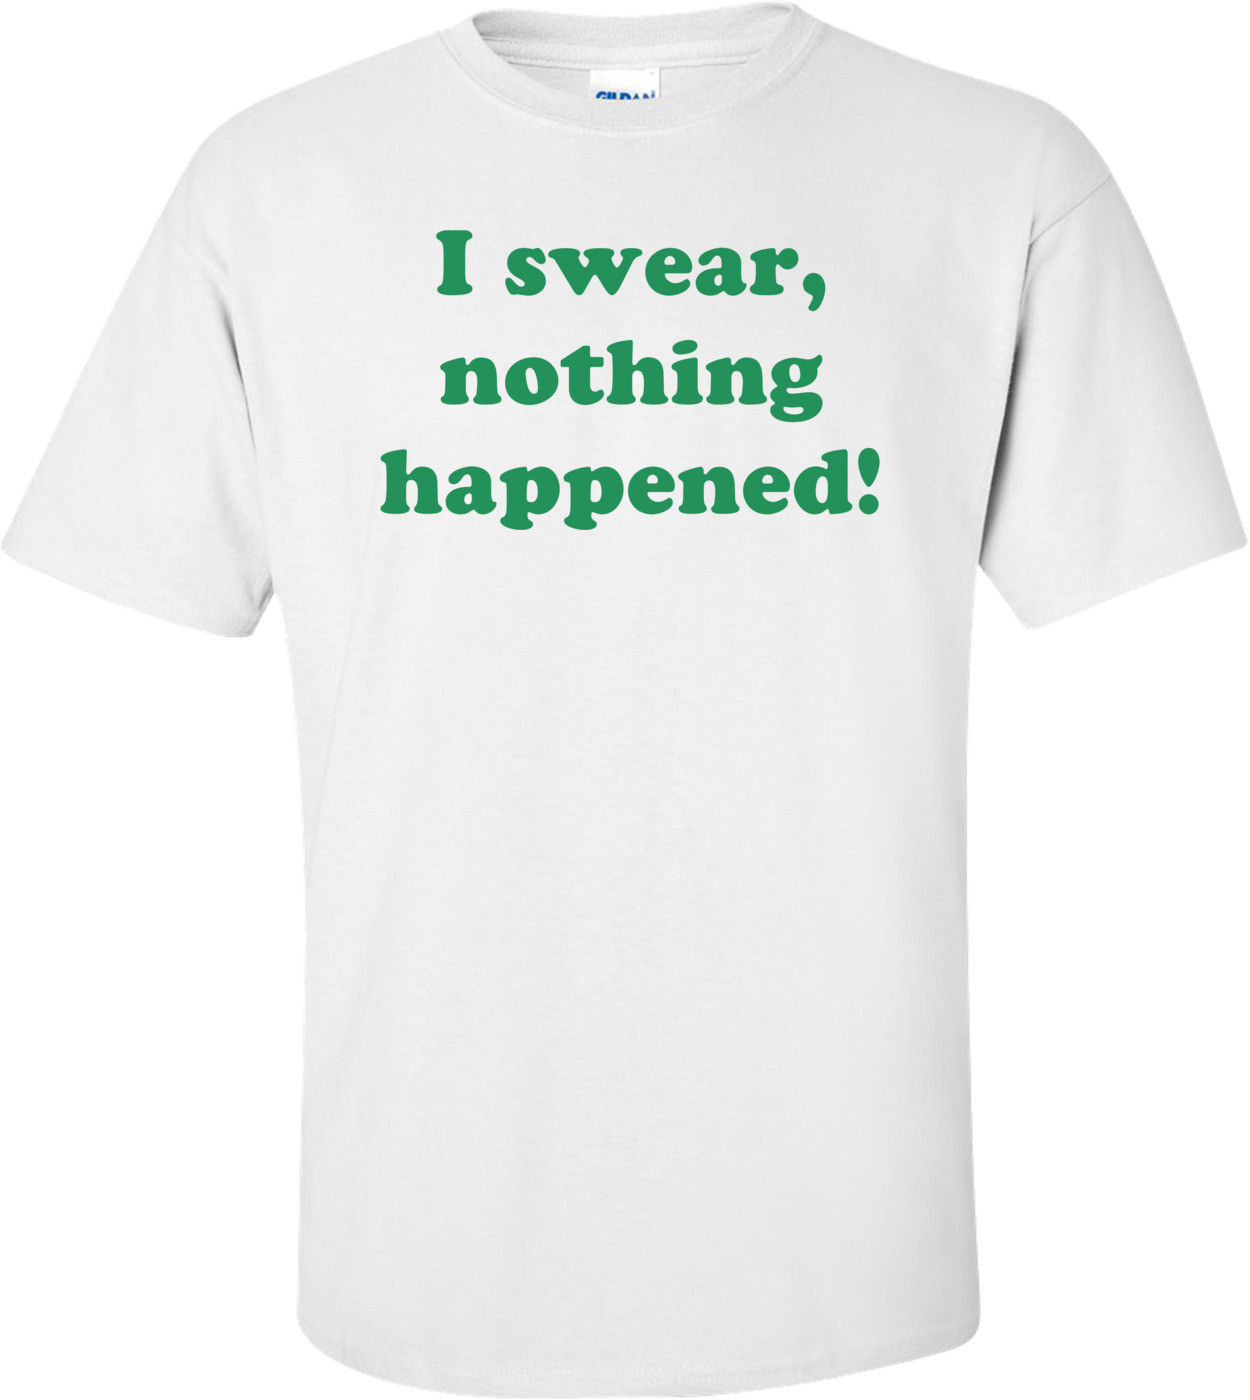 I swear, nothing happened! Shirt